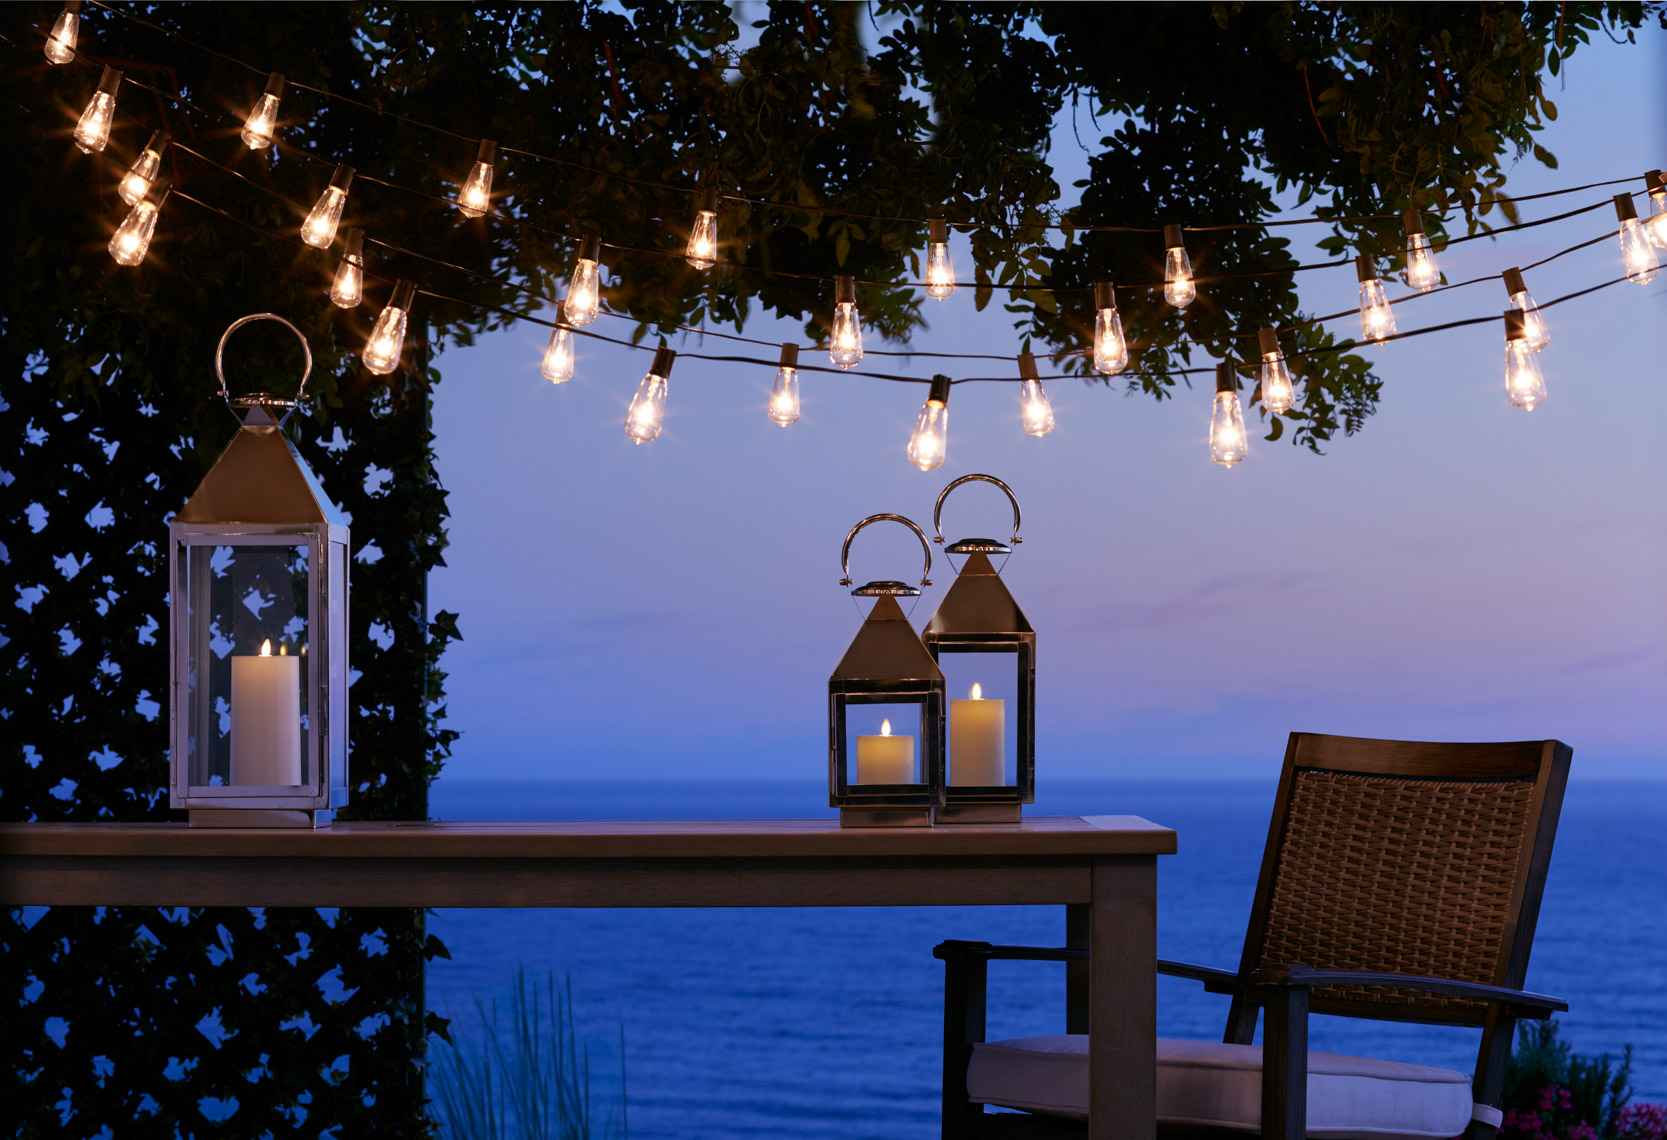 Glass and metal Lanterns with lit candles on wood table with string lights at dusk